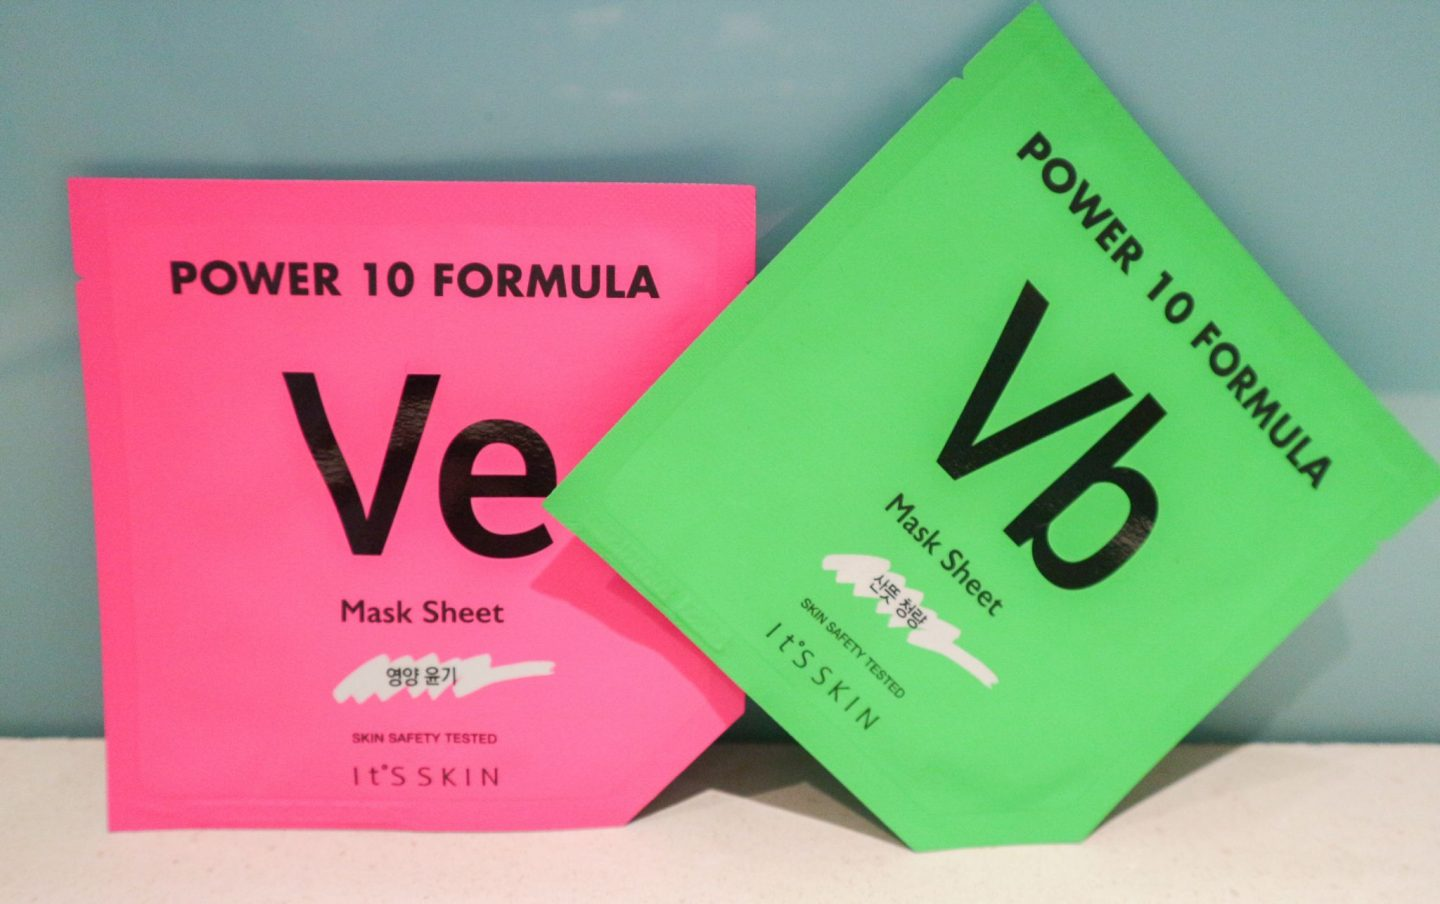 It's Skin Power 10 Sheet Masks